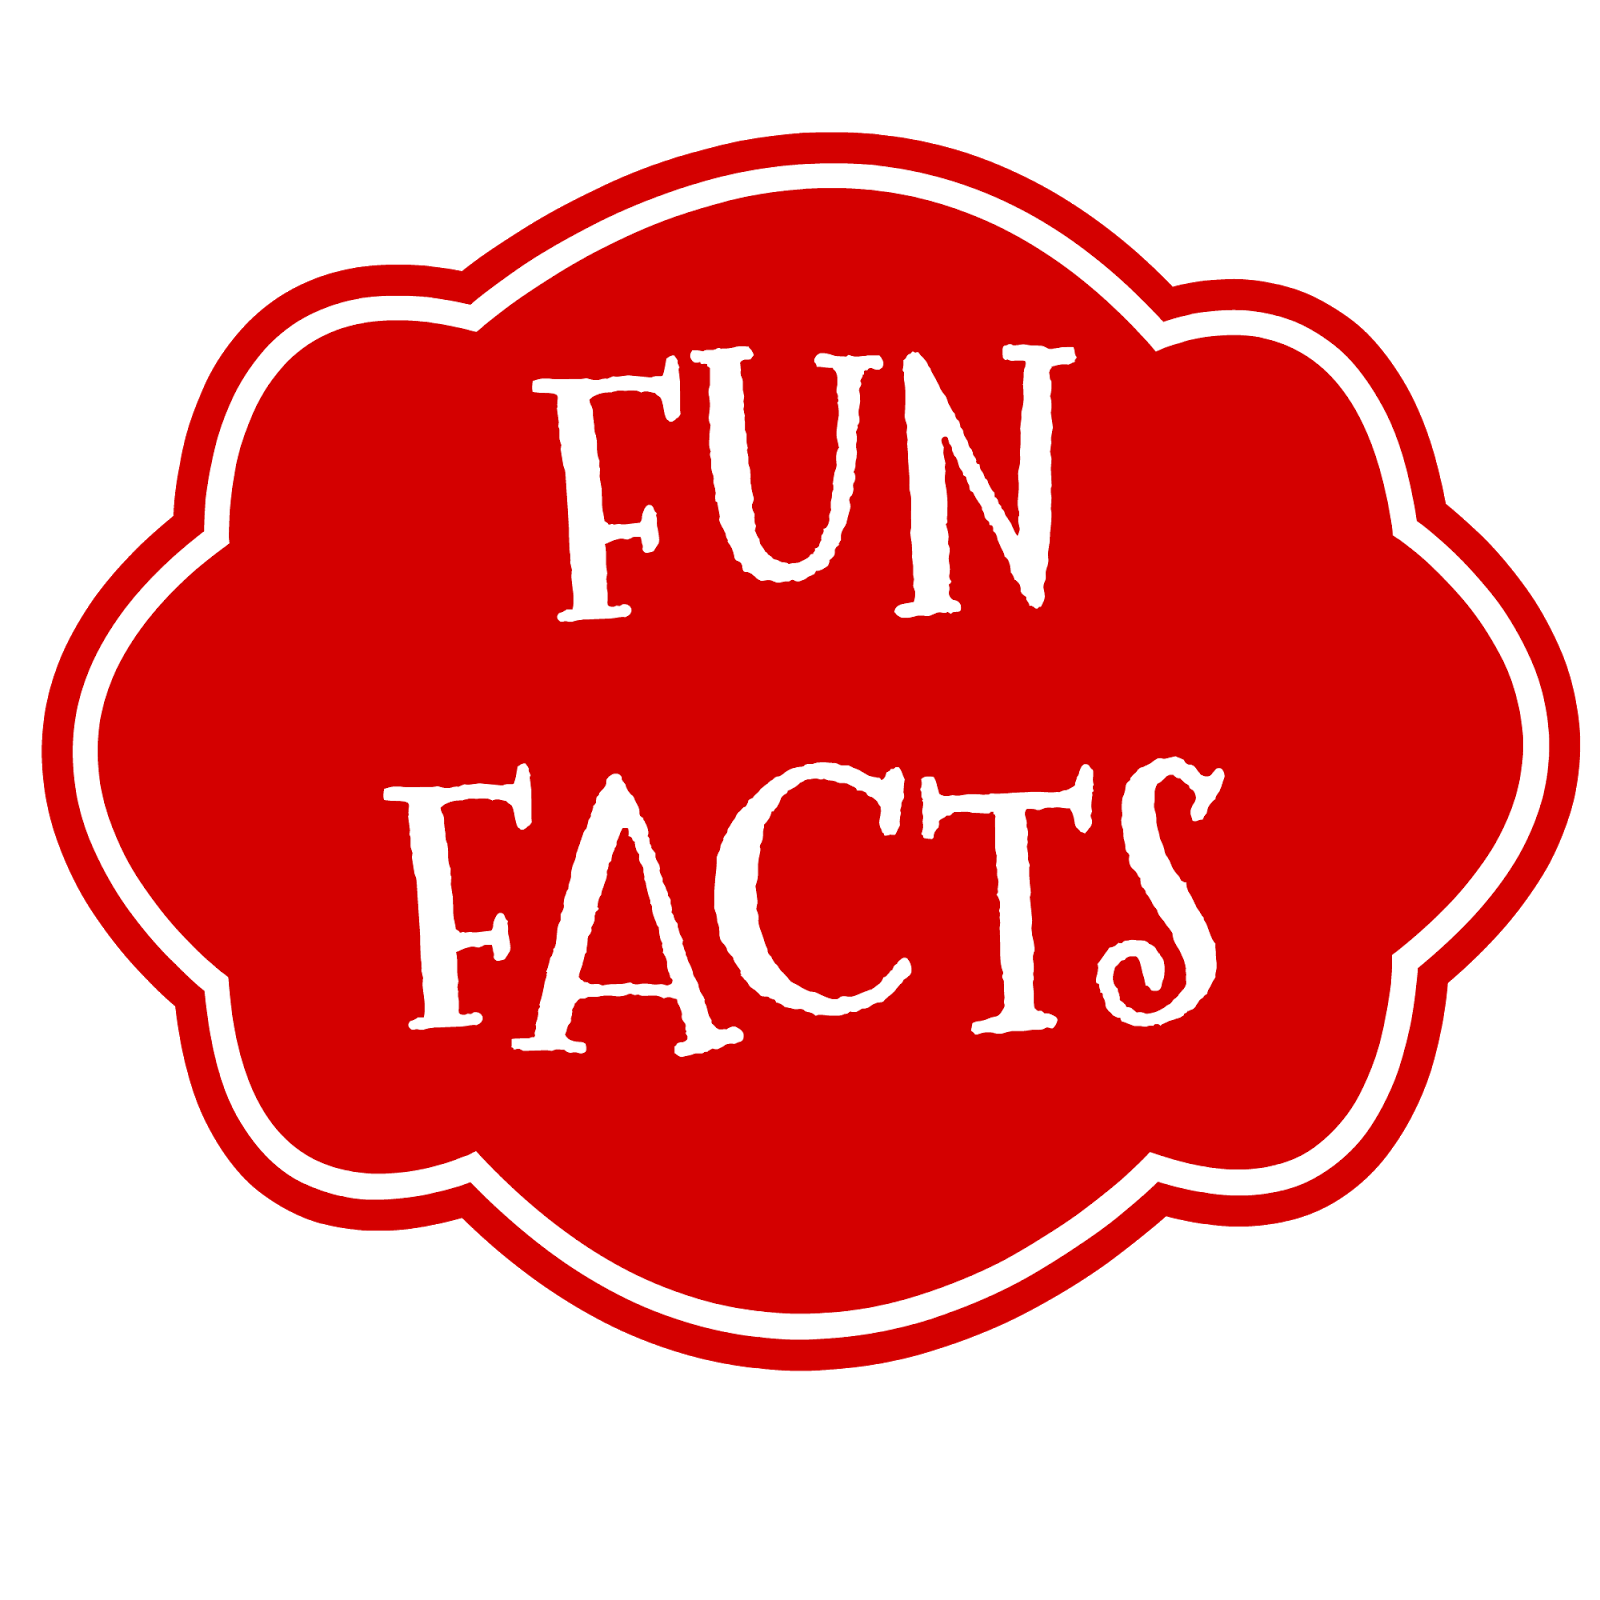 Amazing facts clipart clip transparent library The Art of Random Willy-Nillyness: Fun Facts about MICKEY AND THE ... clip transparent library